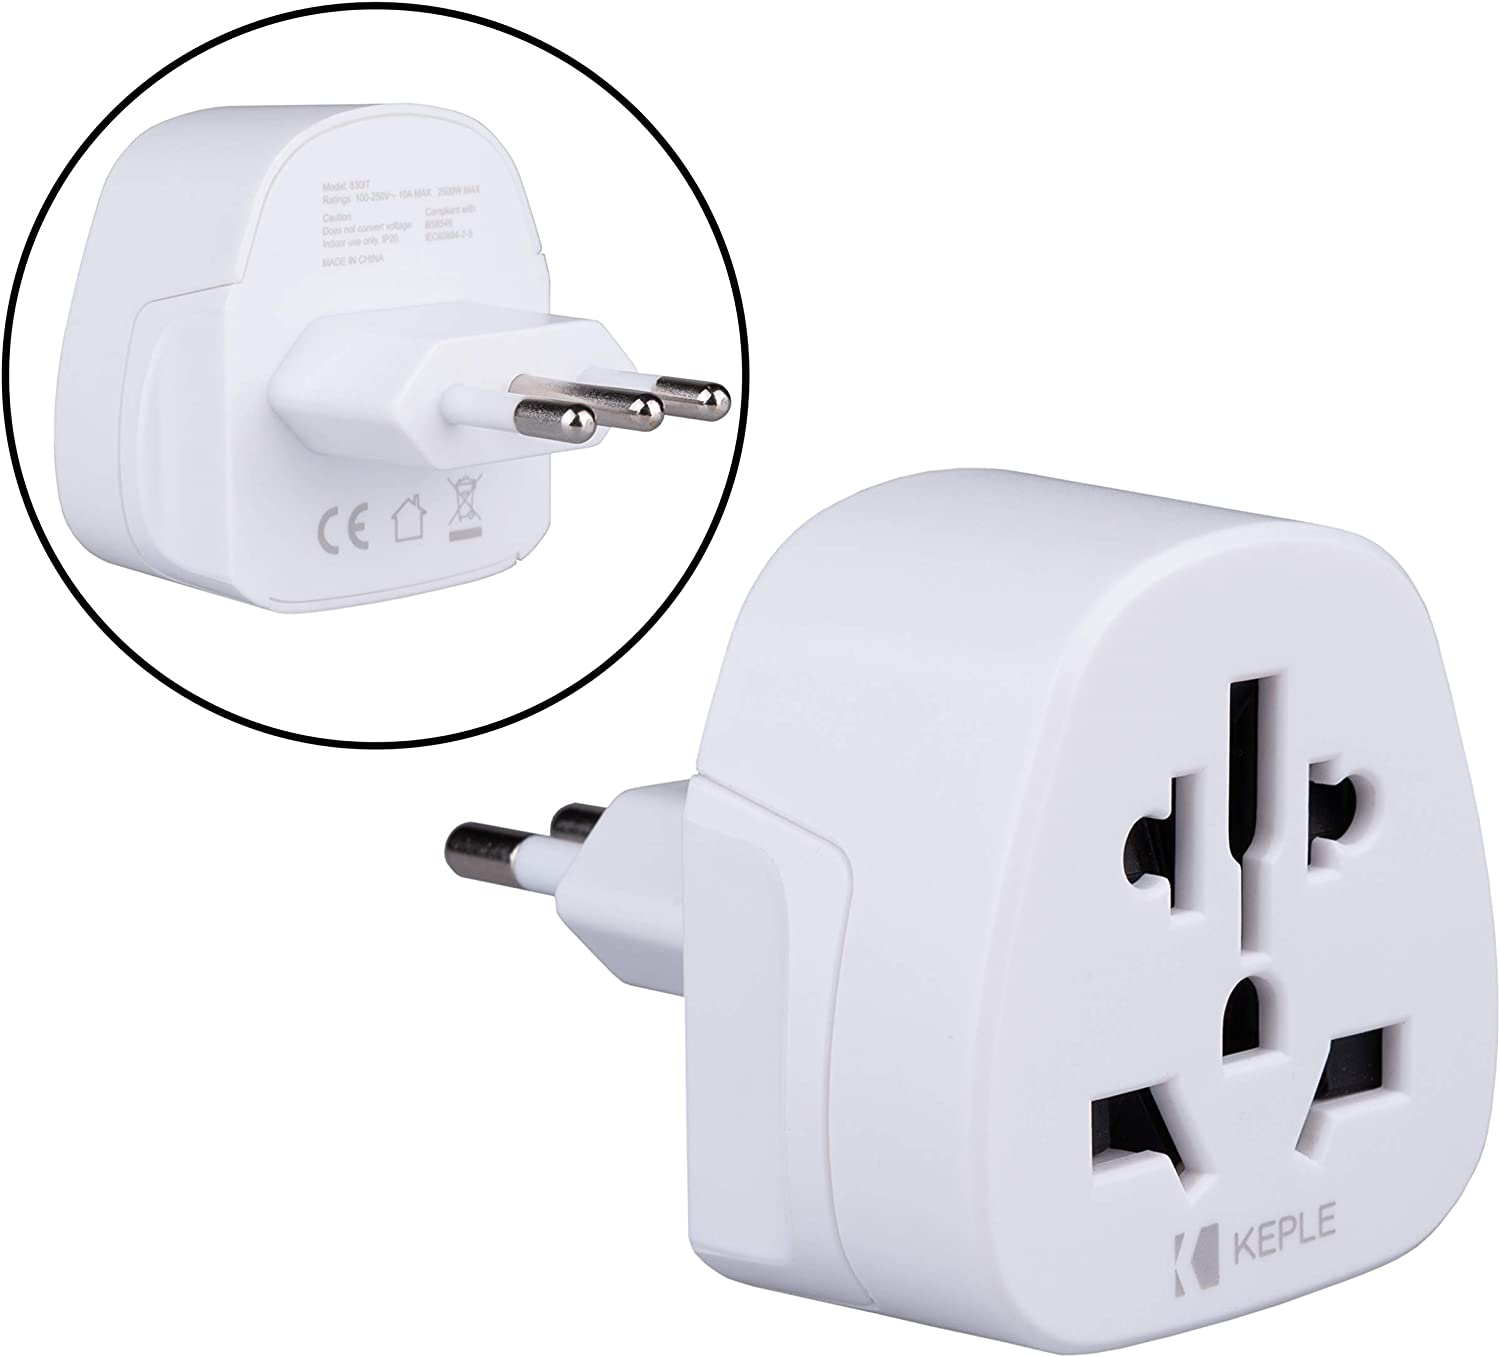 Italien Italy IT Adapter Plug Reise Typ L to zu UK Englisch US USA Amerika Australia Australien EU Europe European Asia Asien China Thailand Stecker Universal Weltweit Steckdose International 3 Pin